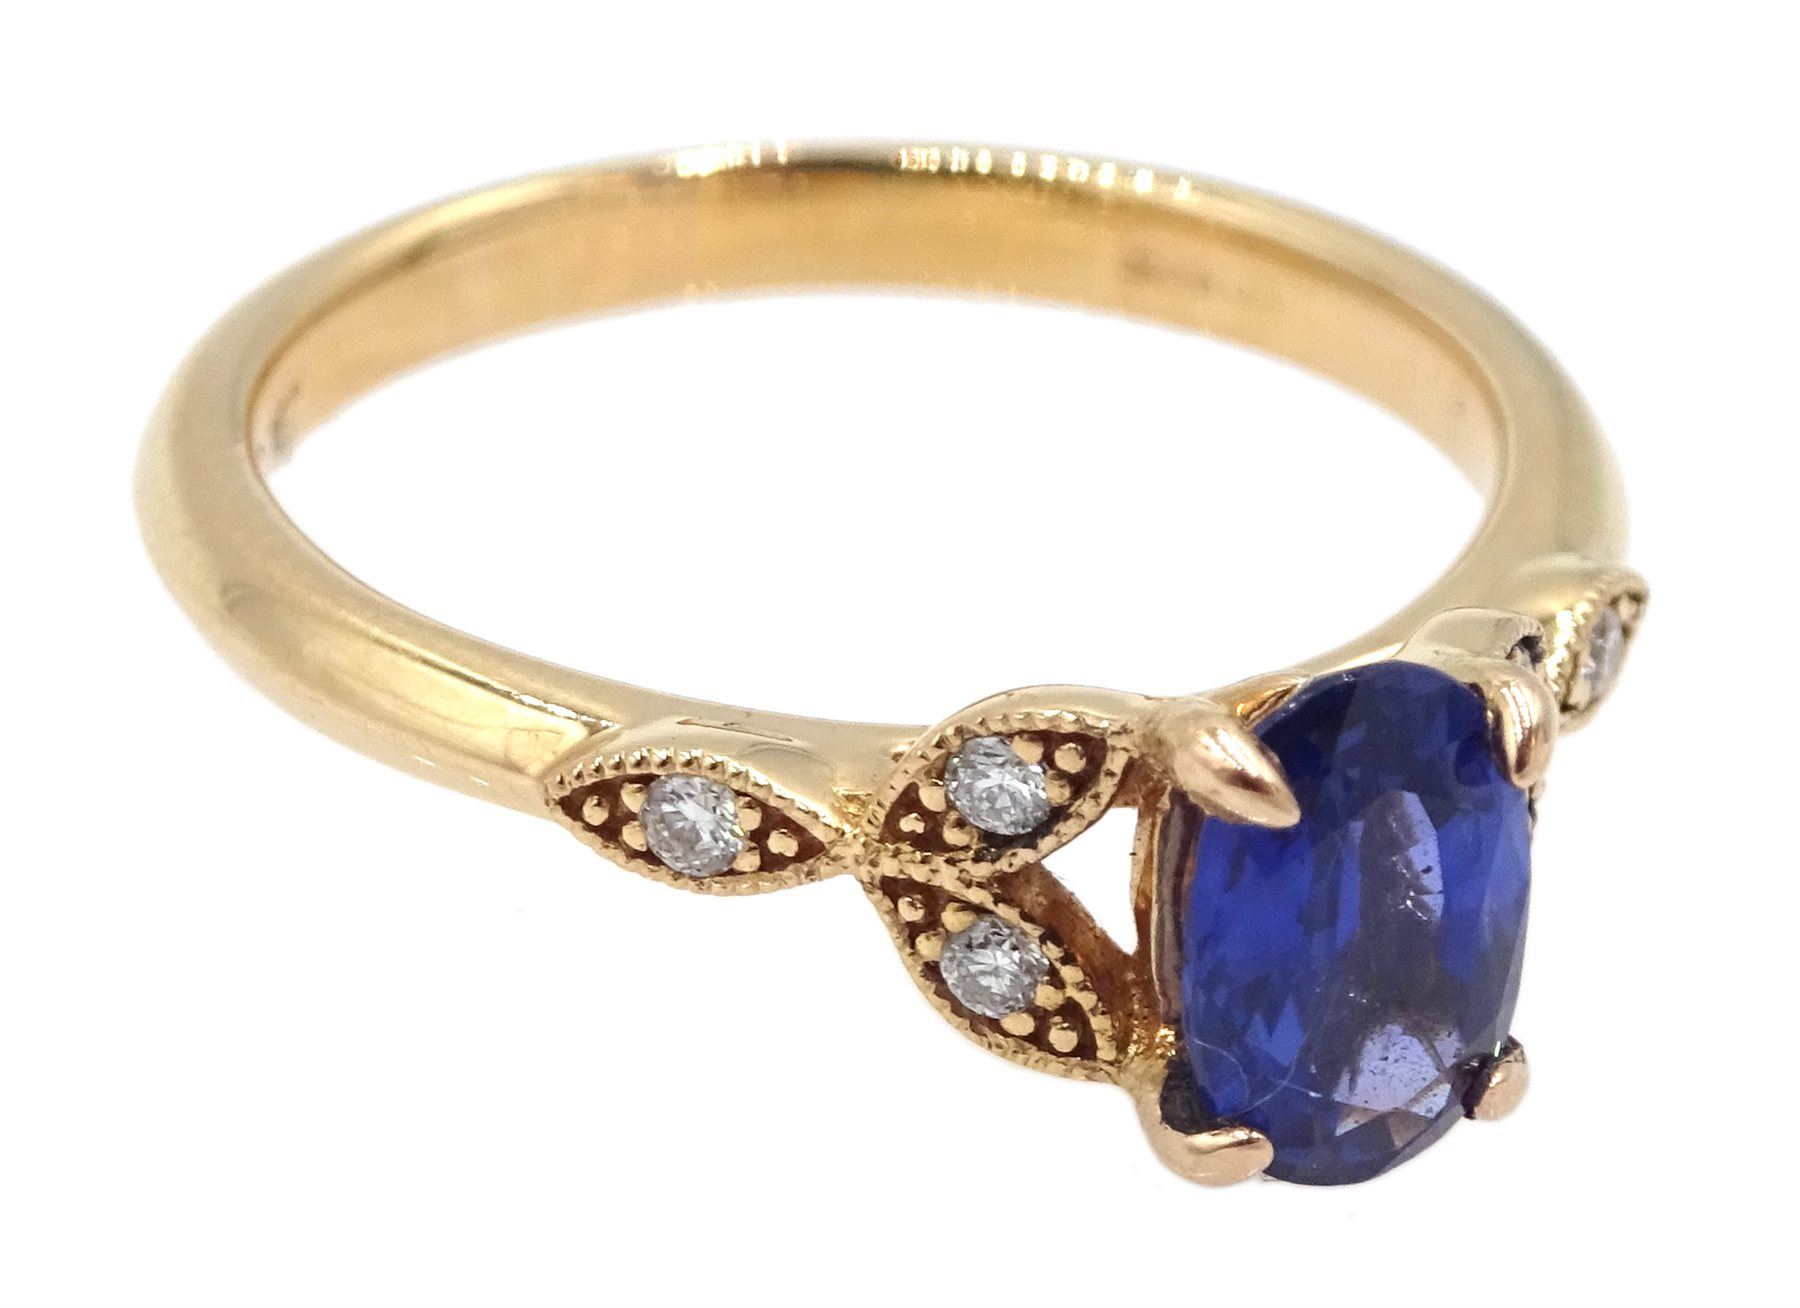 18ct gold oval sapphire ring, with diamond set shoulders, hallmarked, sapphire approx 0.80 carat - Image 3 of 5